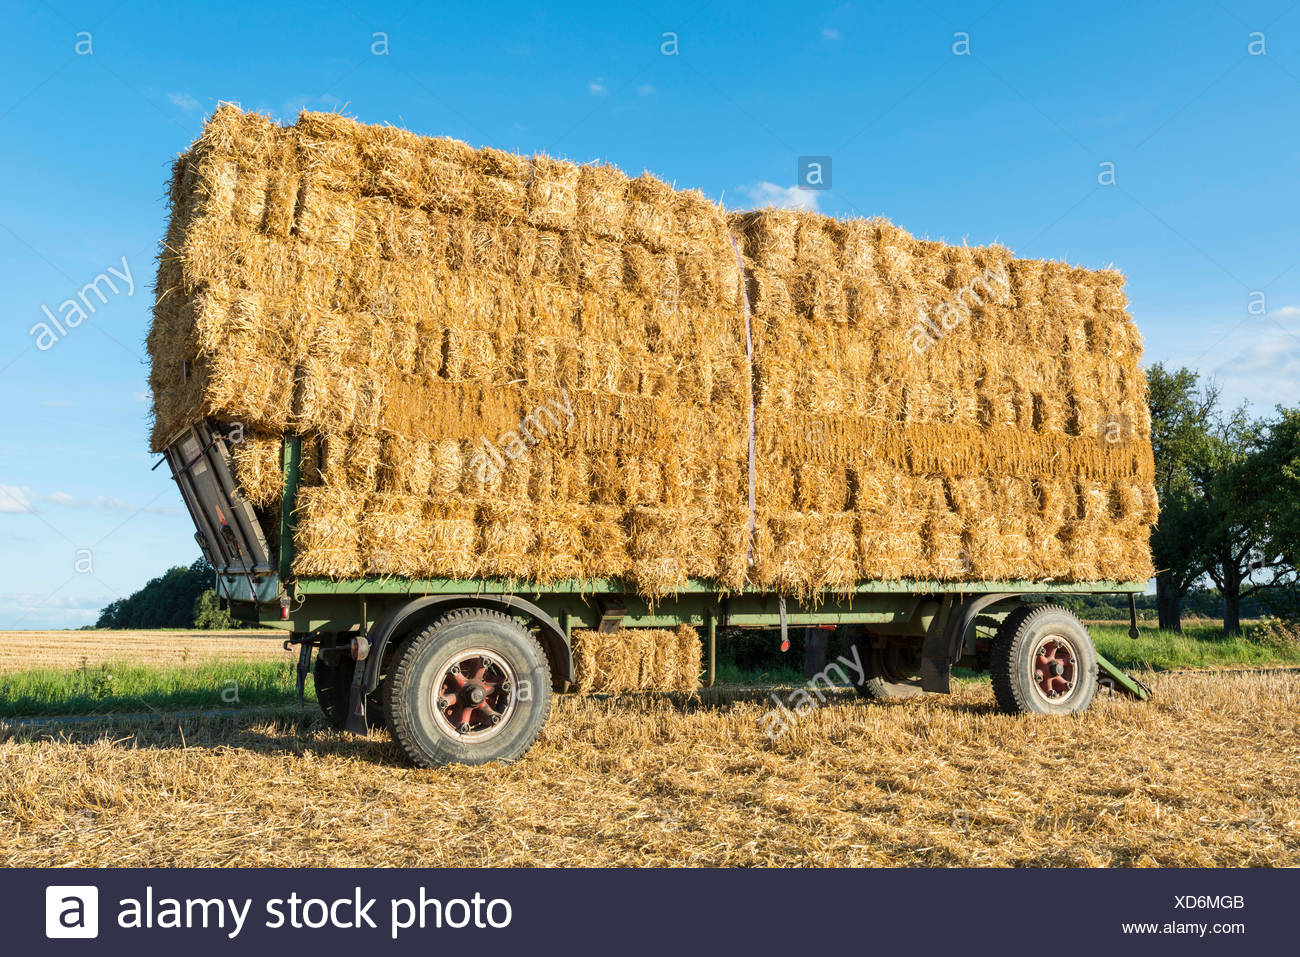 A trailer loaded with bales of straw parked on a field, Baden-Wuerttemberg - Stock Image